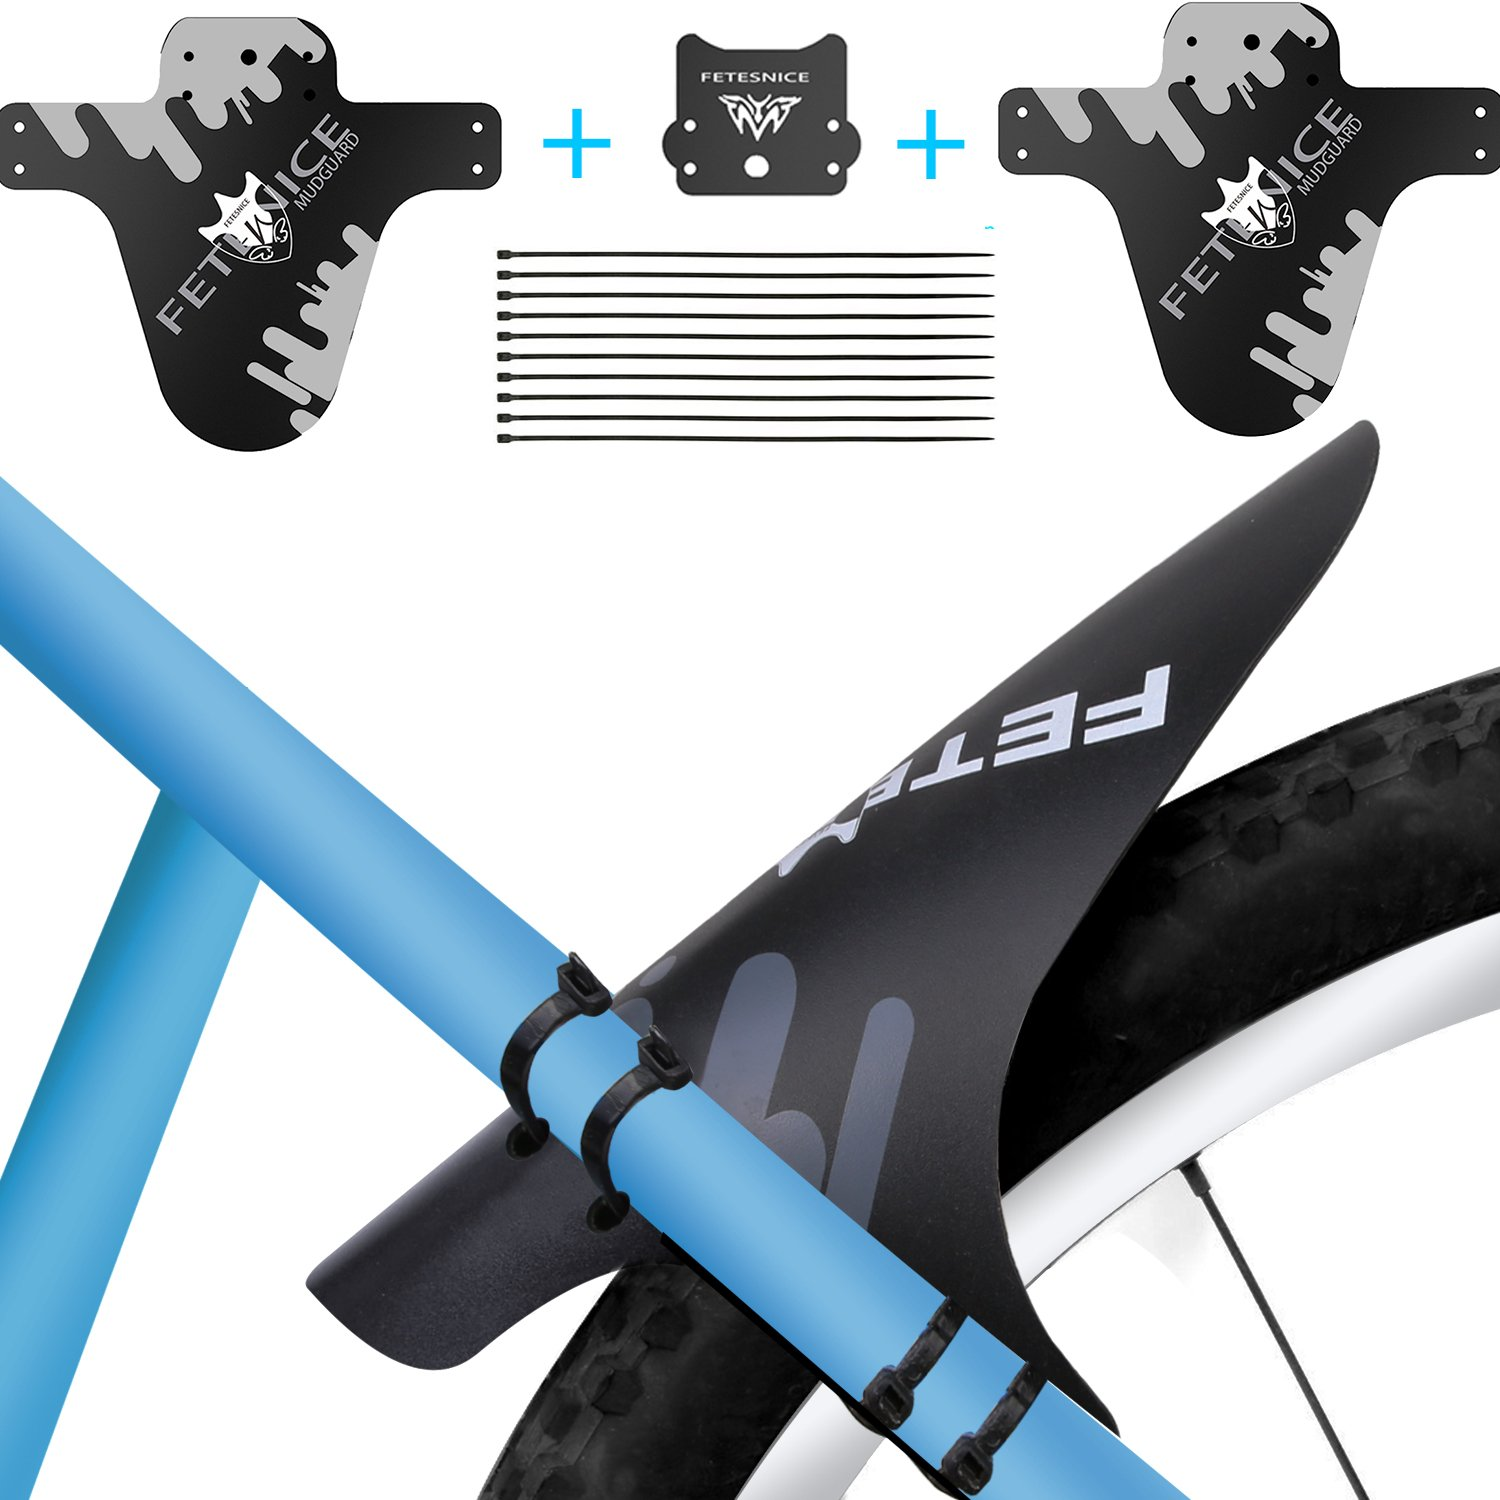 """Smiterl Mountain Bike Fender Kit,Mountain Bike Mud Guards, Adjustable Front Rear Compatible Bicycle Tire MTB Mud Guard Fender with 10 Cable Ties, Fit for 26""""27.5""""29"""" MTB Cycling"""